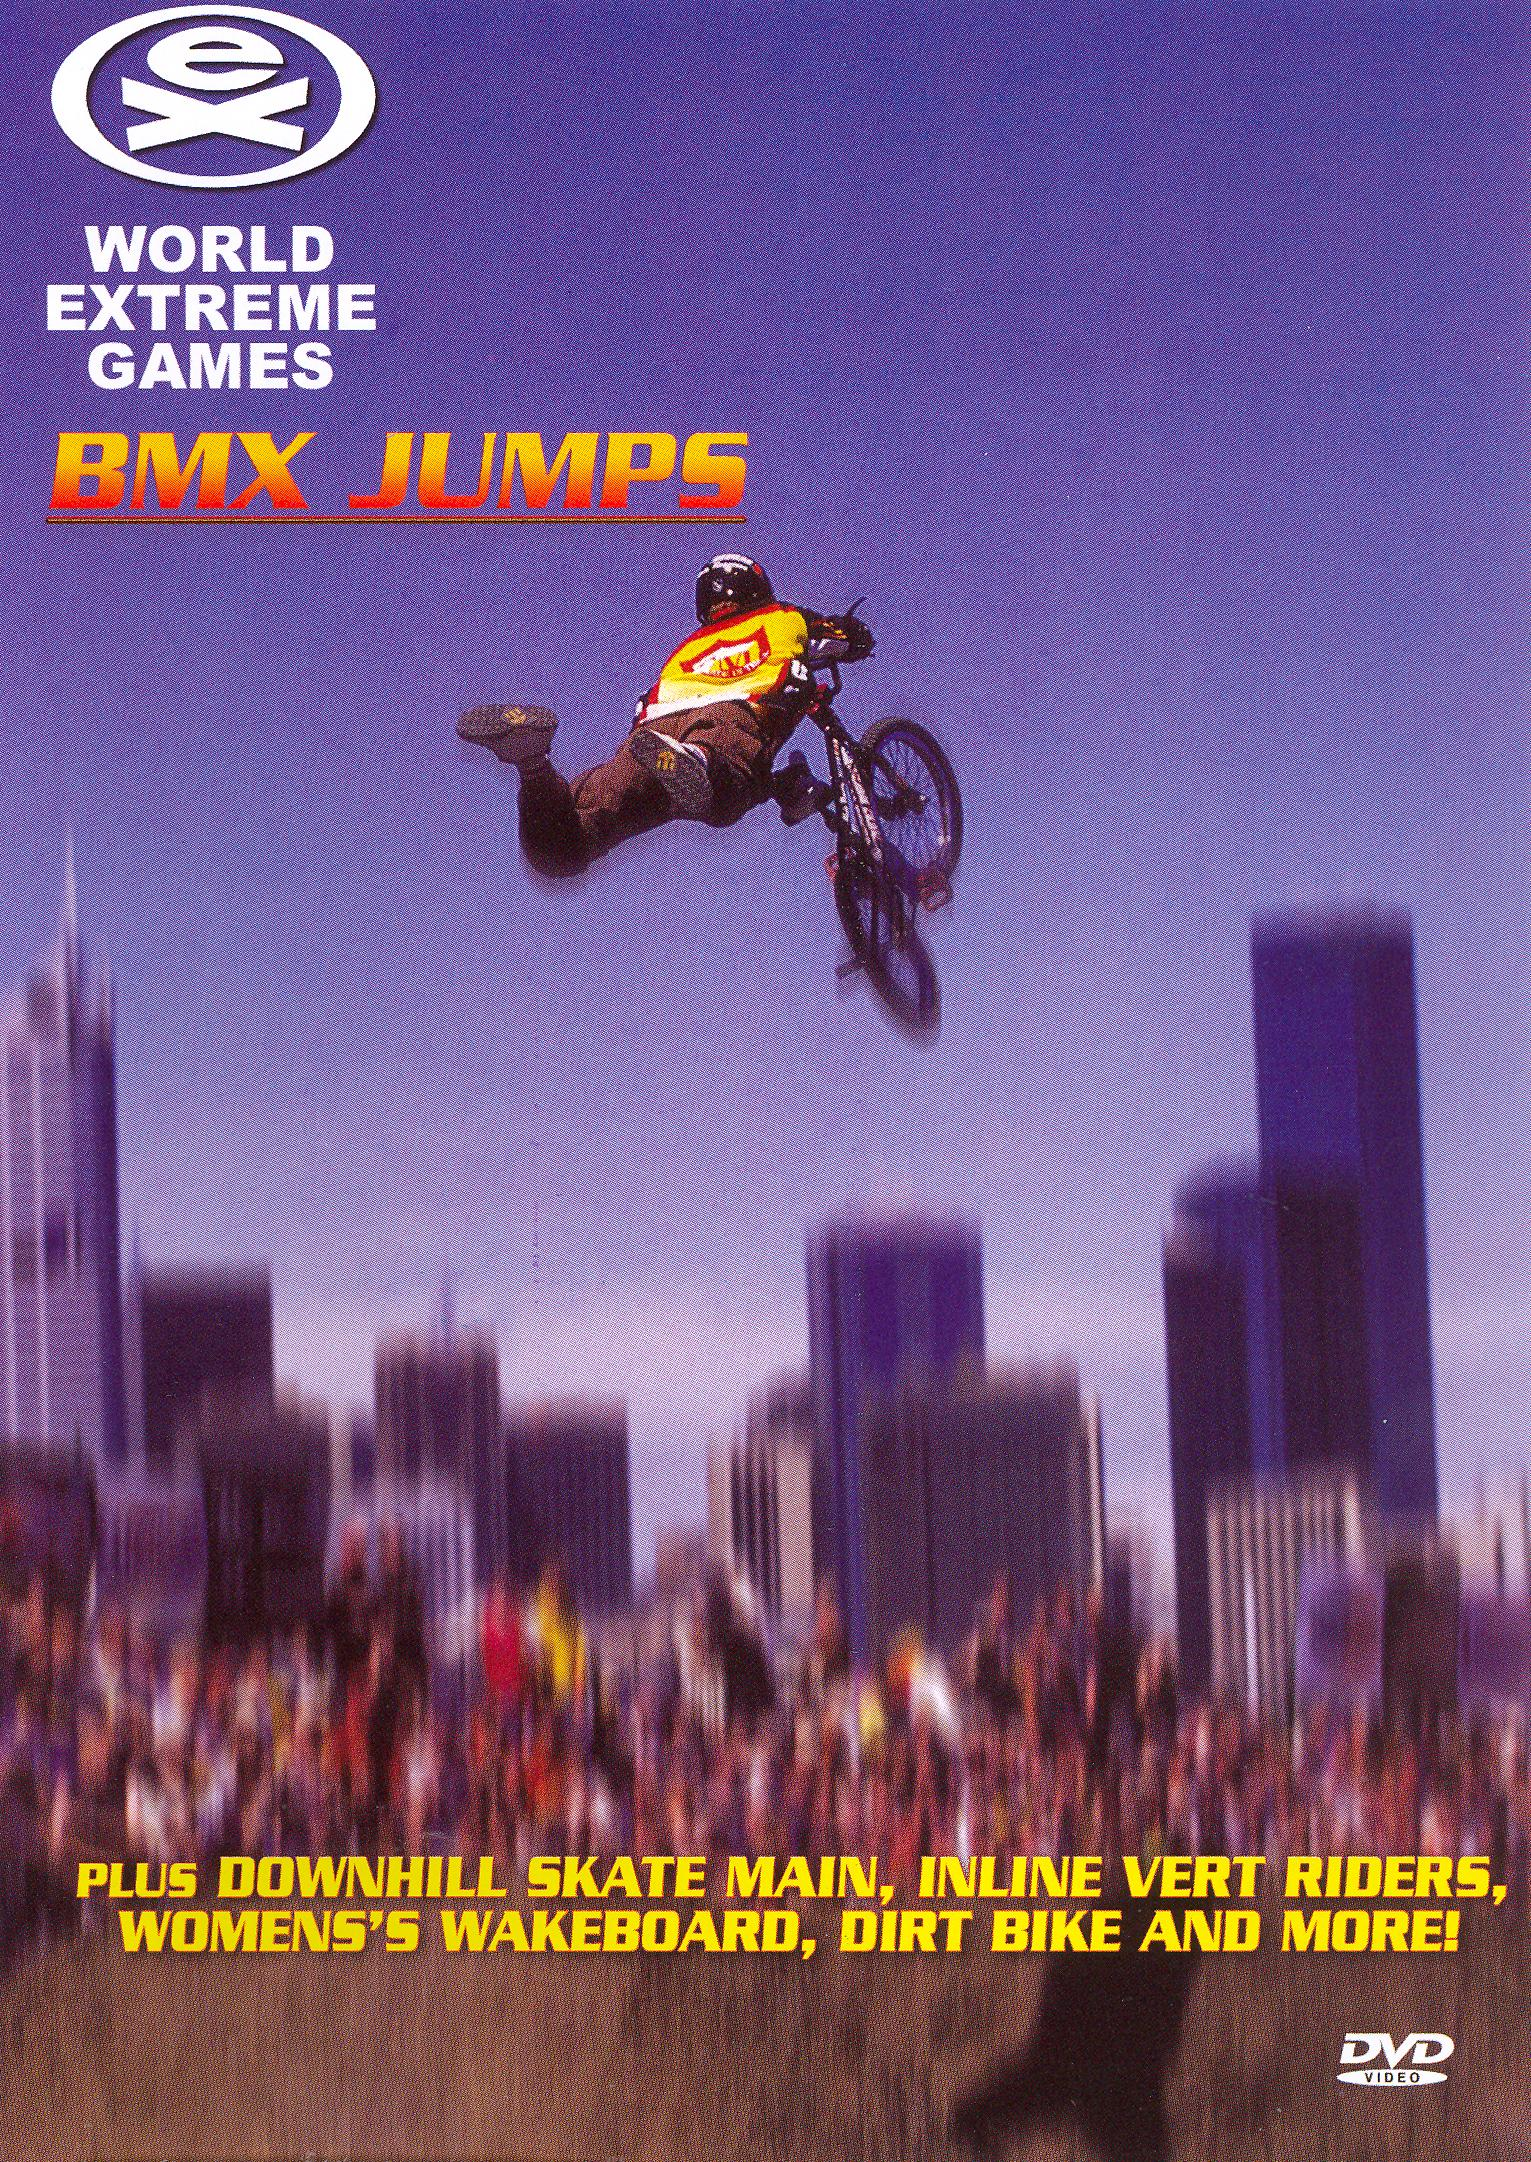 World Extreme Games, Vol. 3